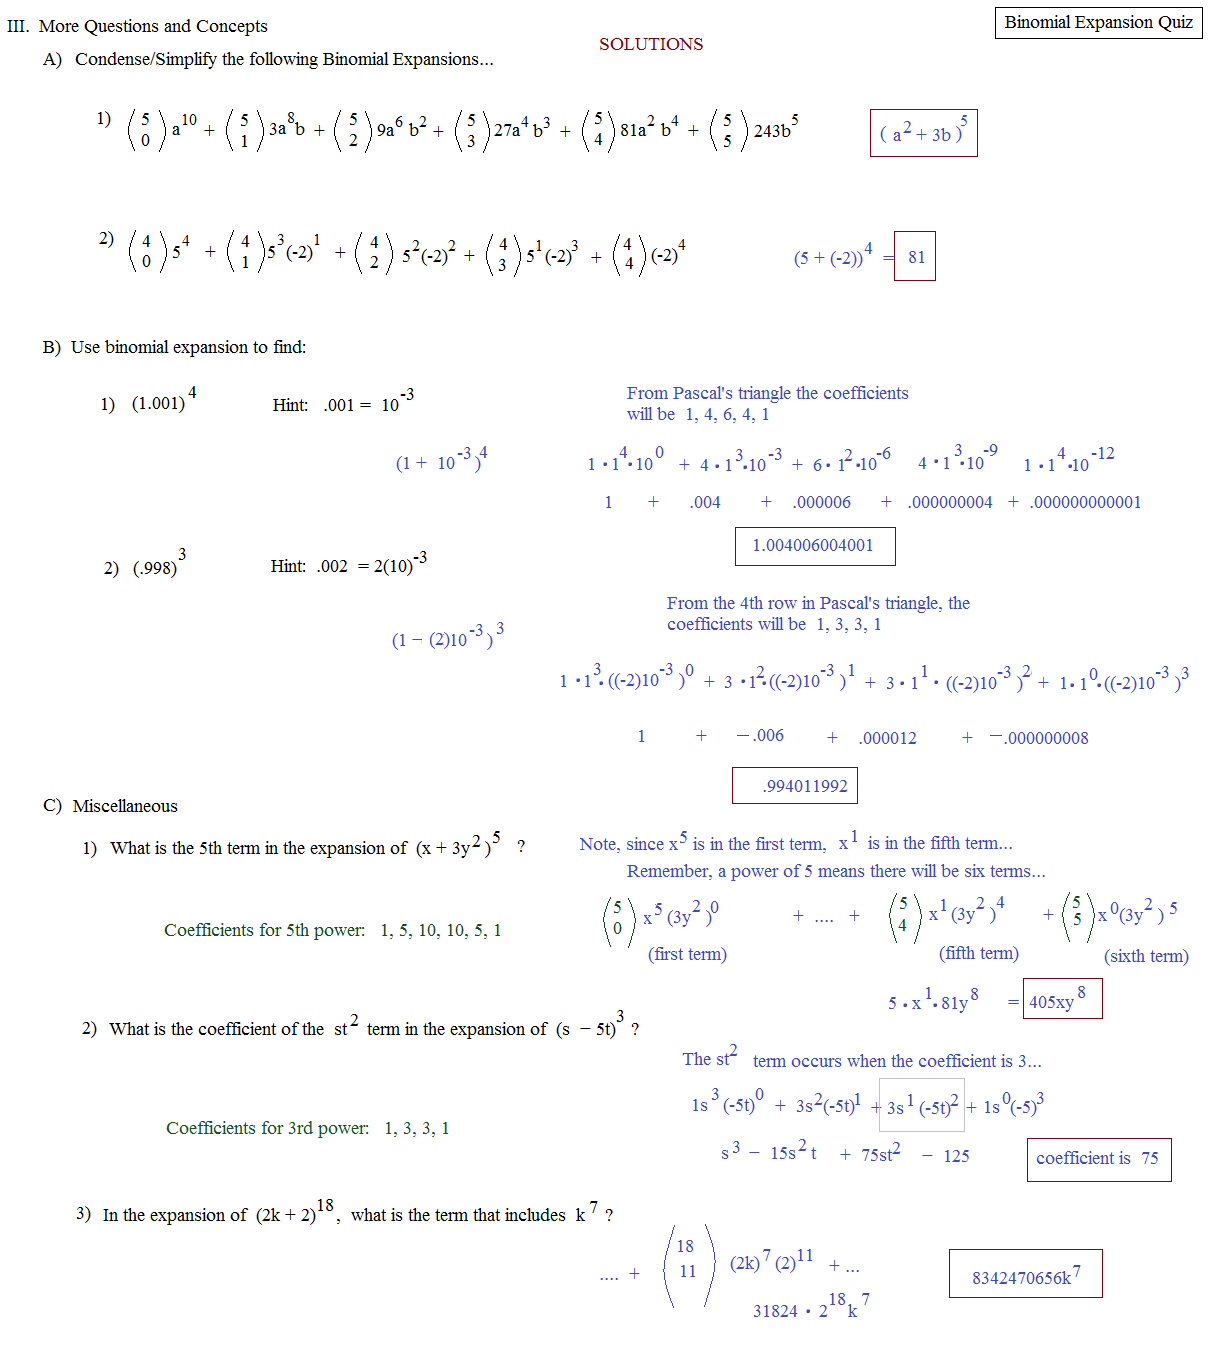 worksheet Binomial Expansion Worksheet math plane binomial expansion theorem quiz 2 solutions